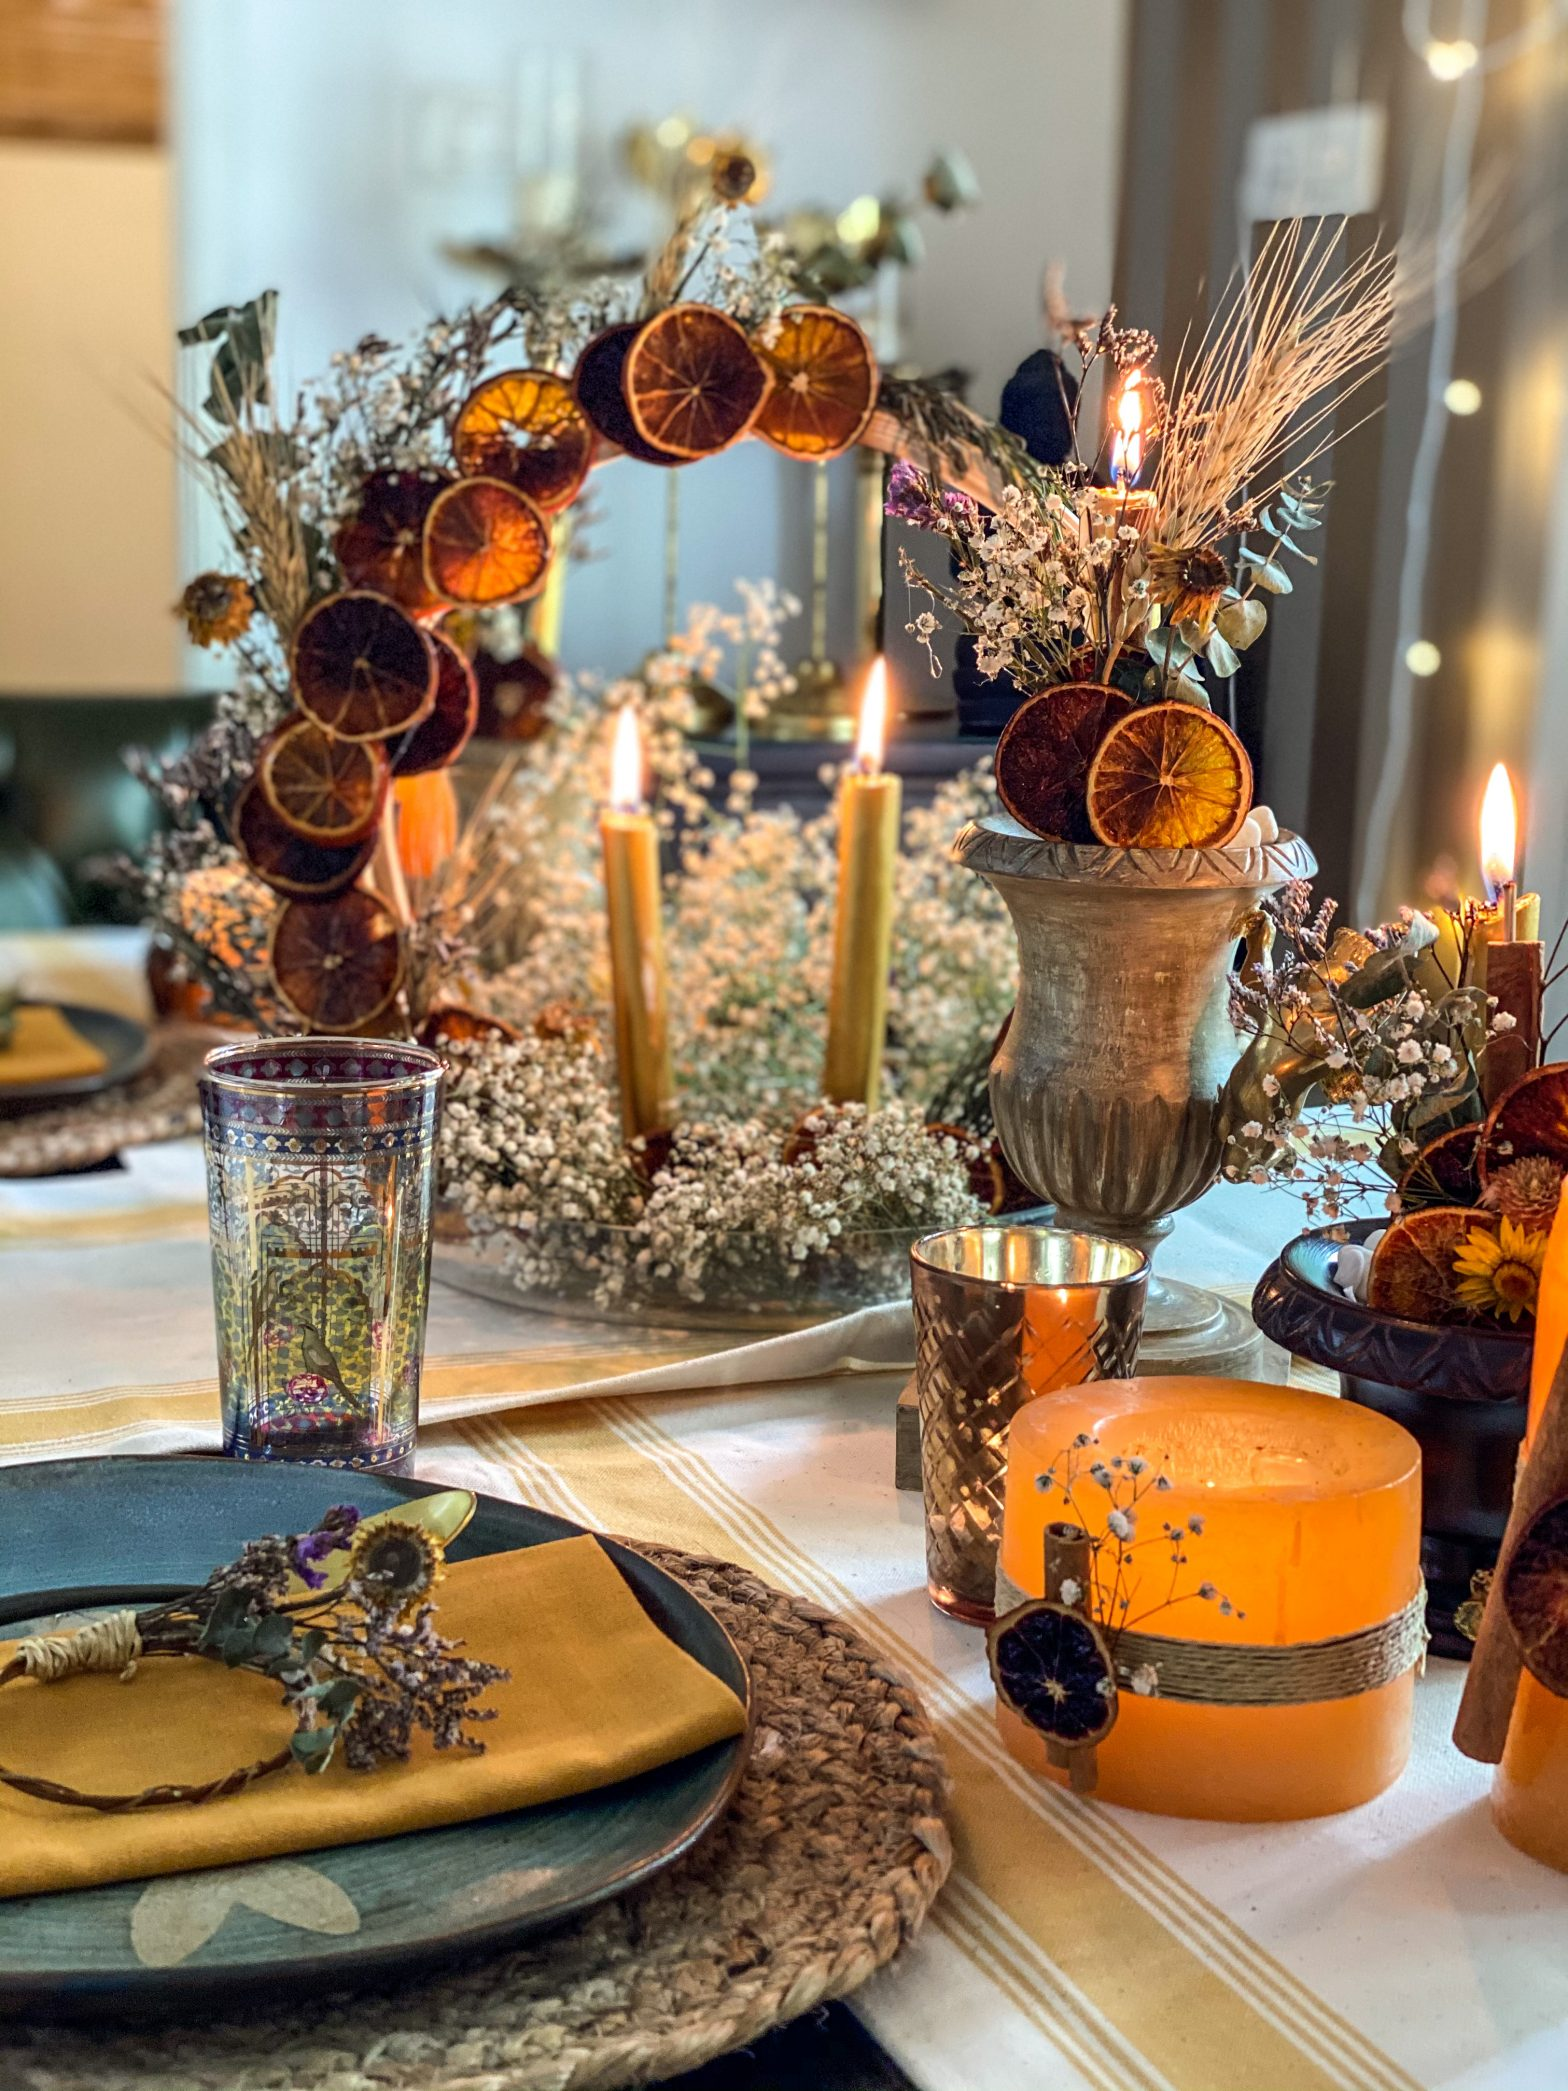 The Art of Gorgeous Tablescapes & More with Pooja Arya